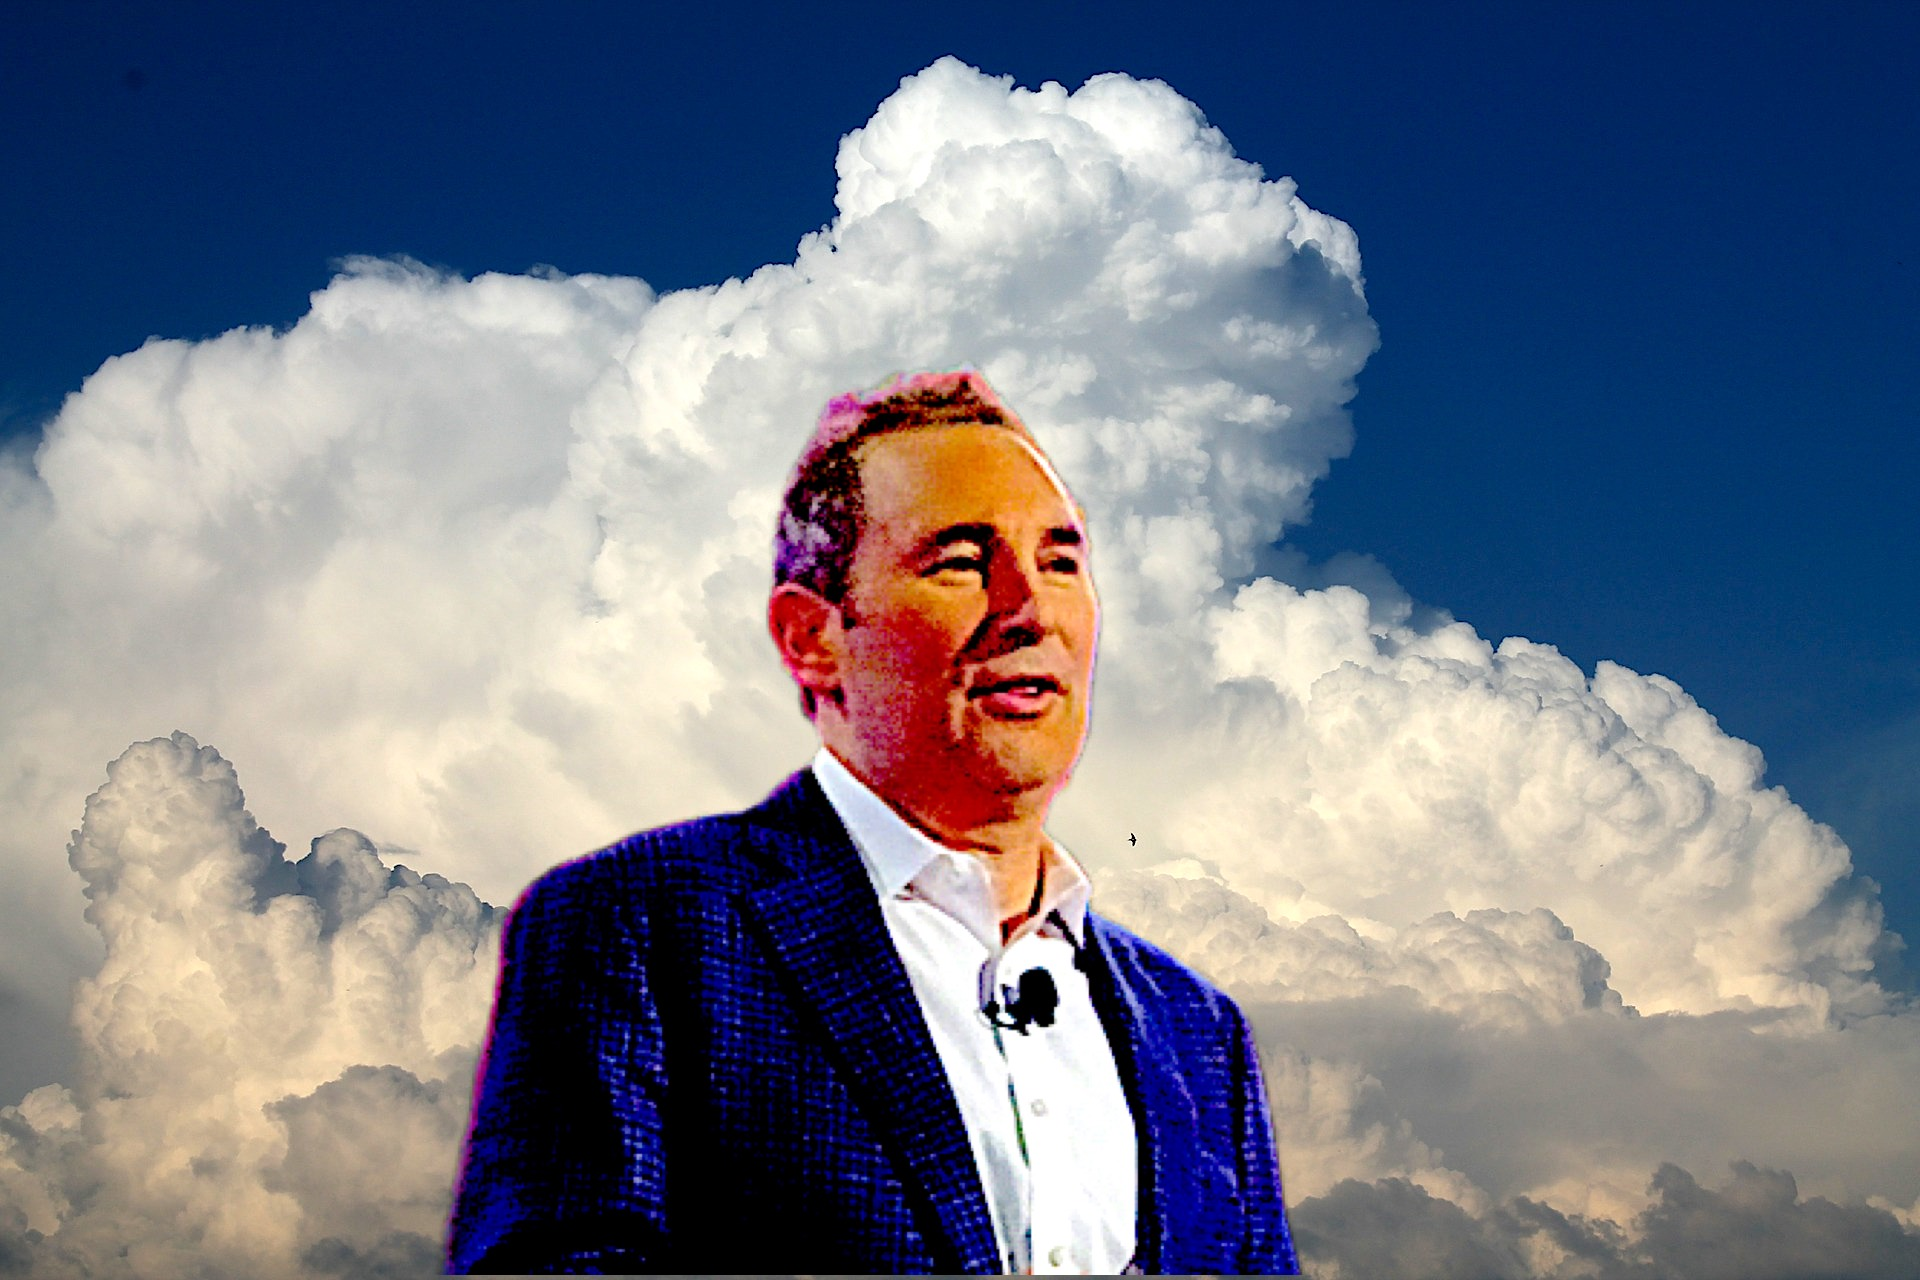 Commentary: Andy Jassy aims to reinvent Amazon Web Services for the cloud's next generation